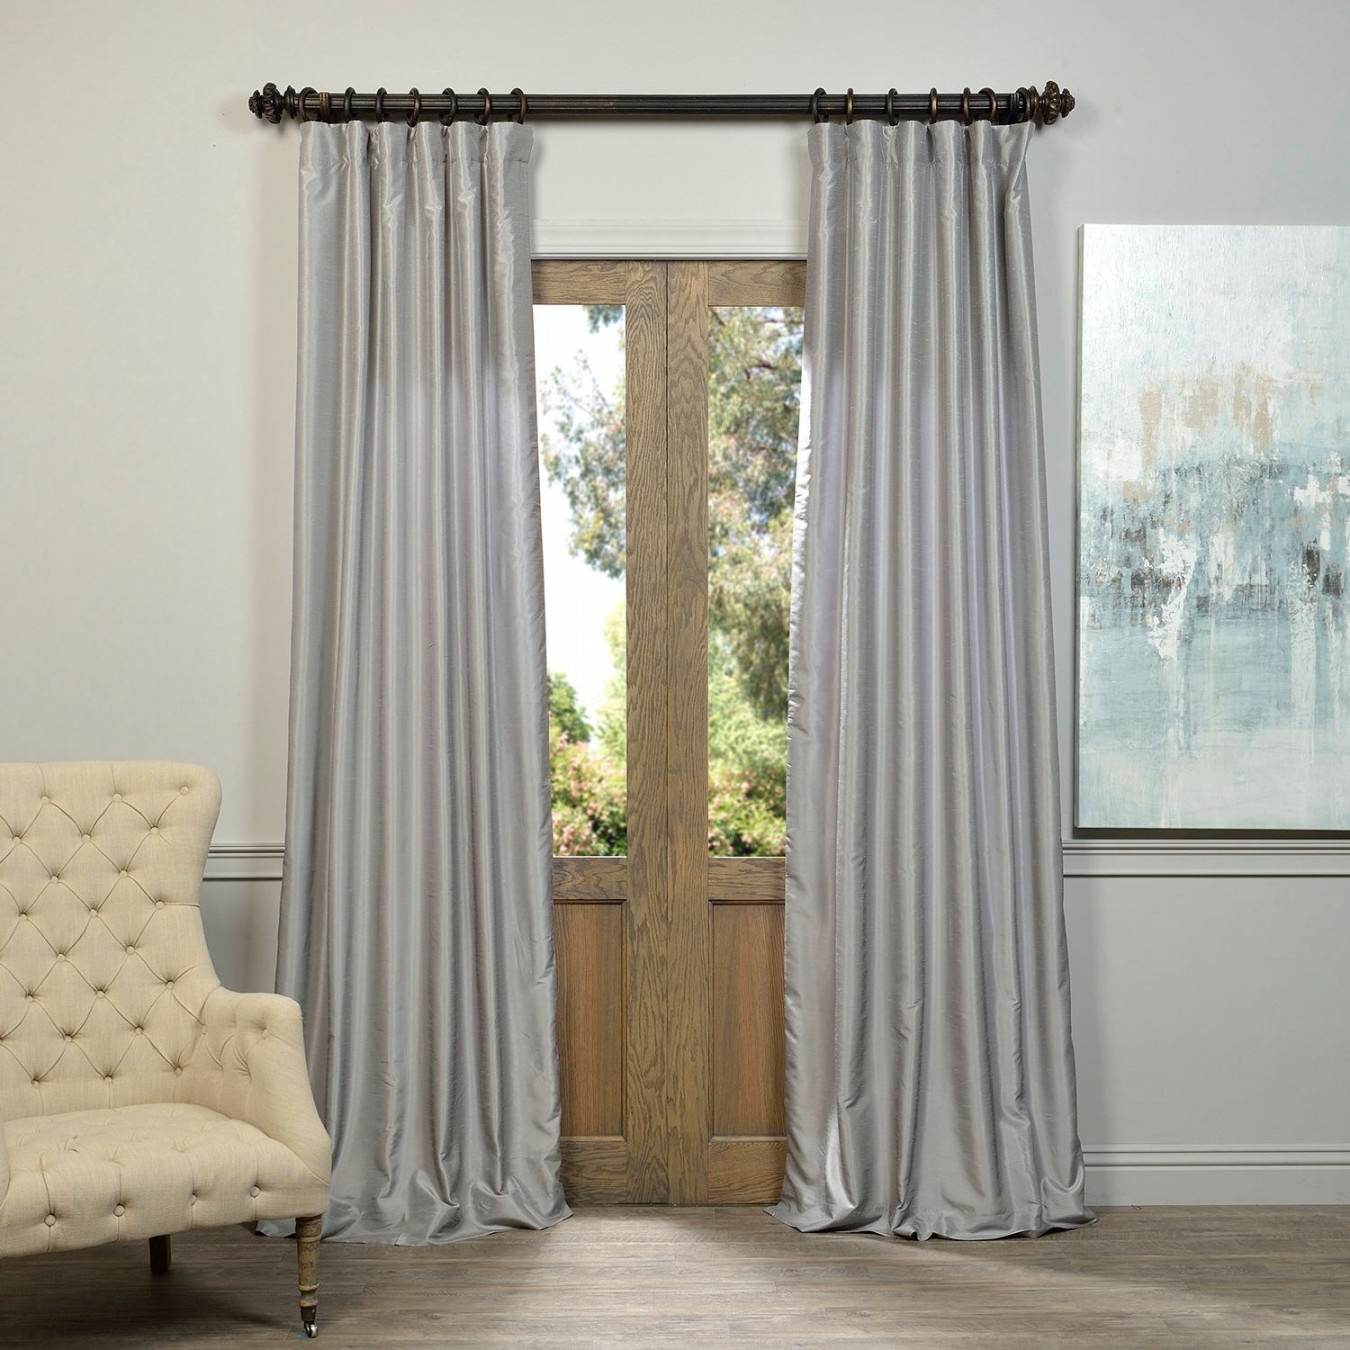 12 Silk Curtains Texture 2019 – Pinnedmtb With Regard To Ice White Vintage Faux Textured Silk Curtain Panels (Photo 18 of 20)